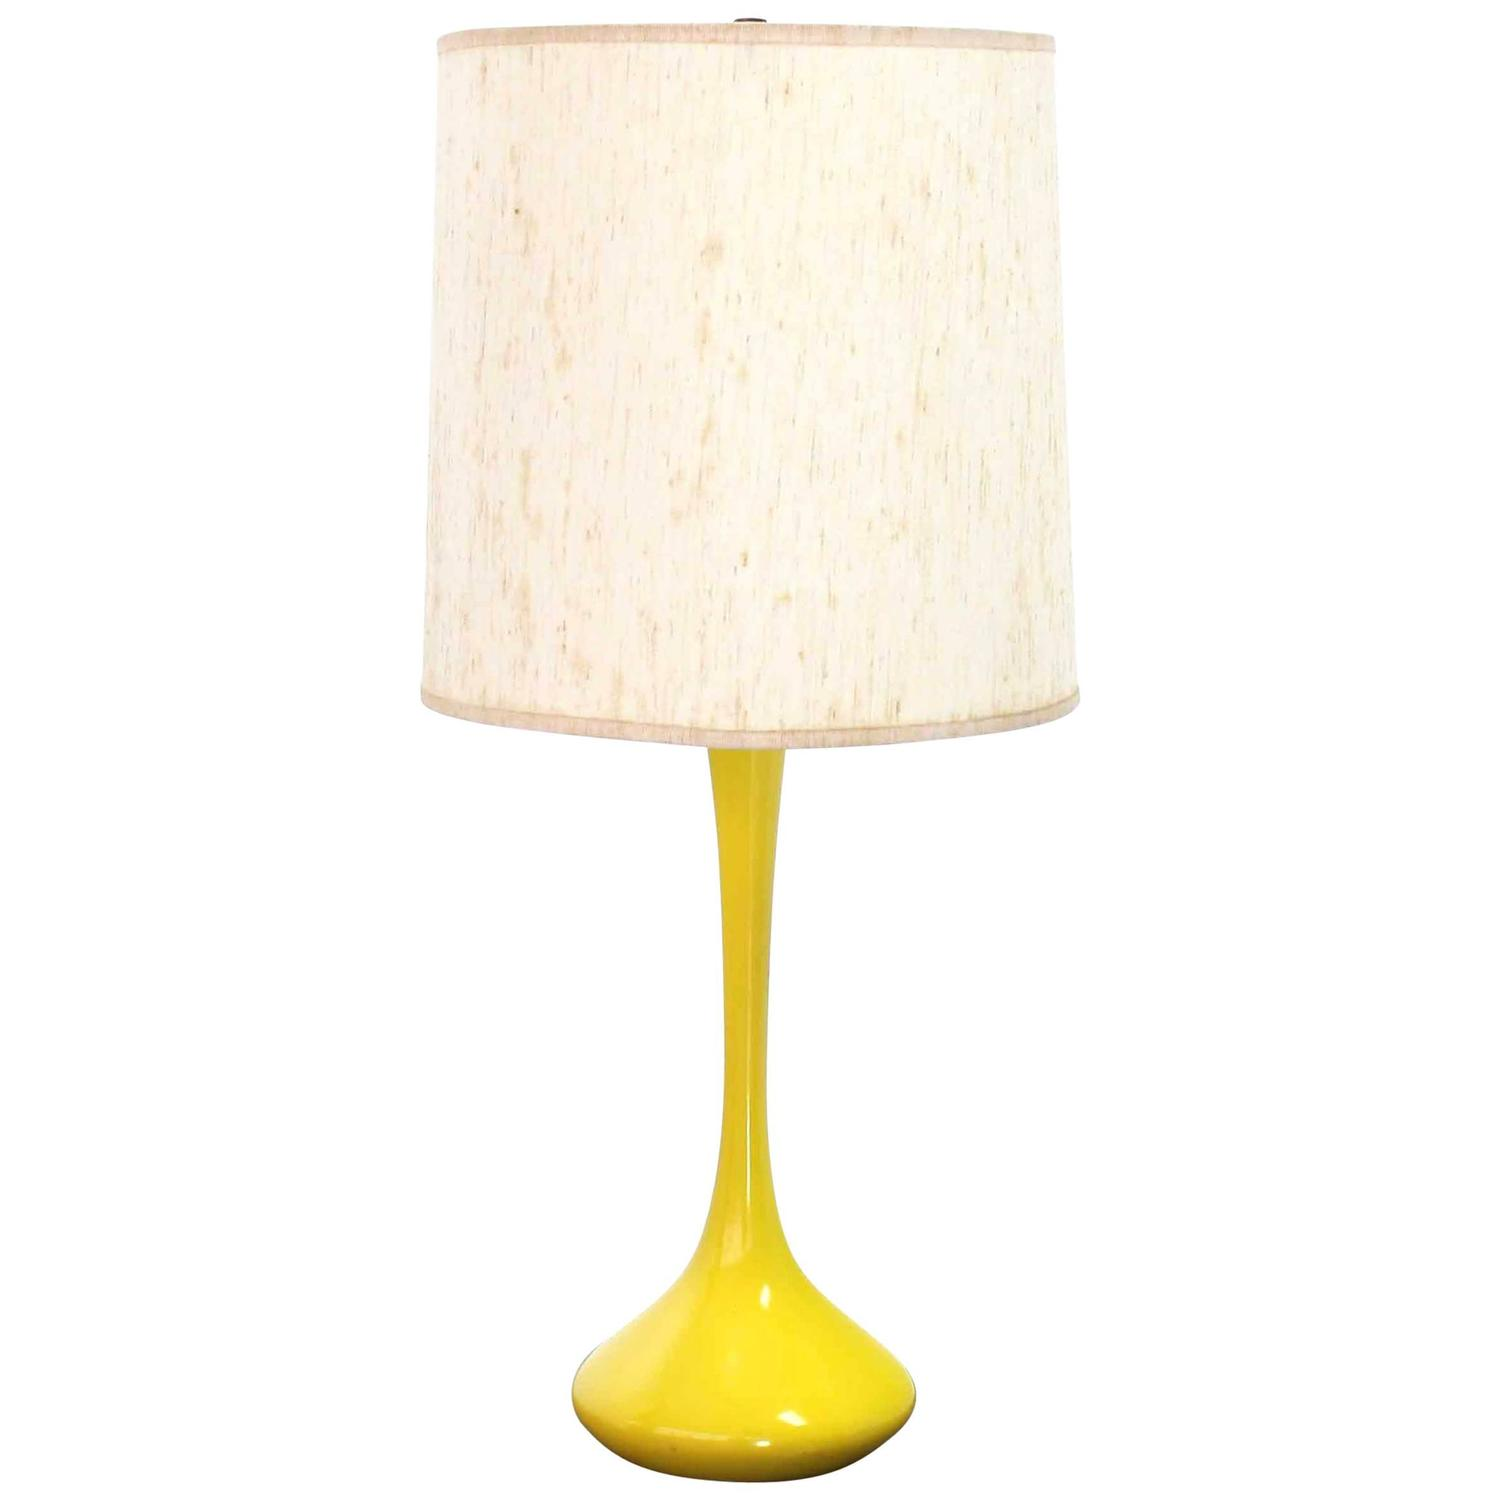 mid century modern table lamp for sale at 1stdibs. Black Bedroom Furniture Sets. Home Design Ideas